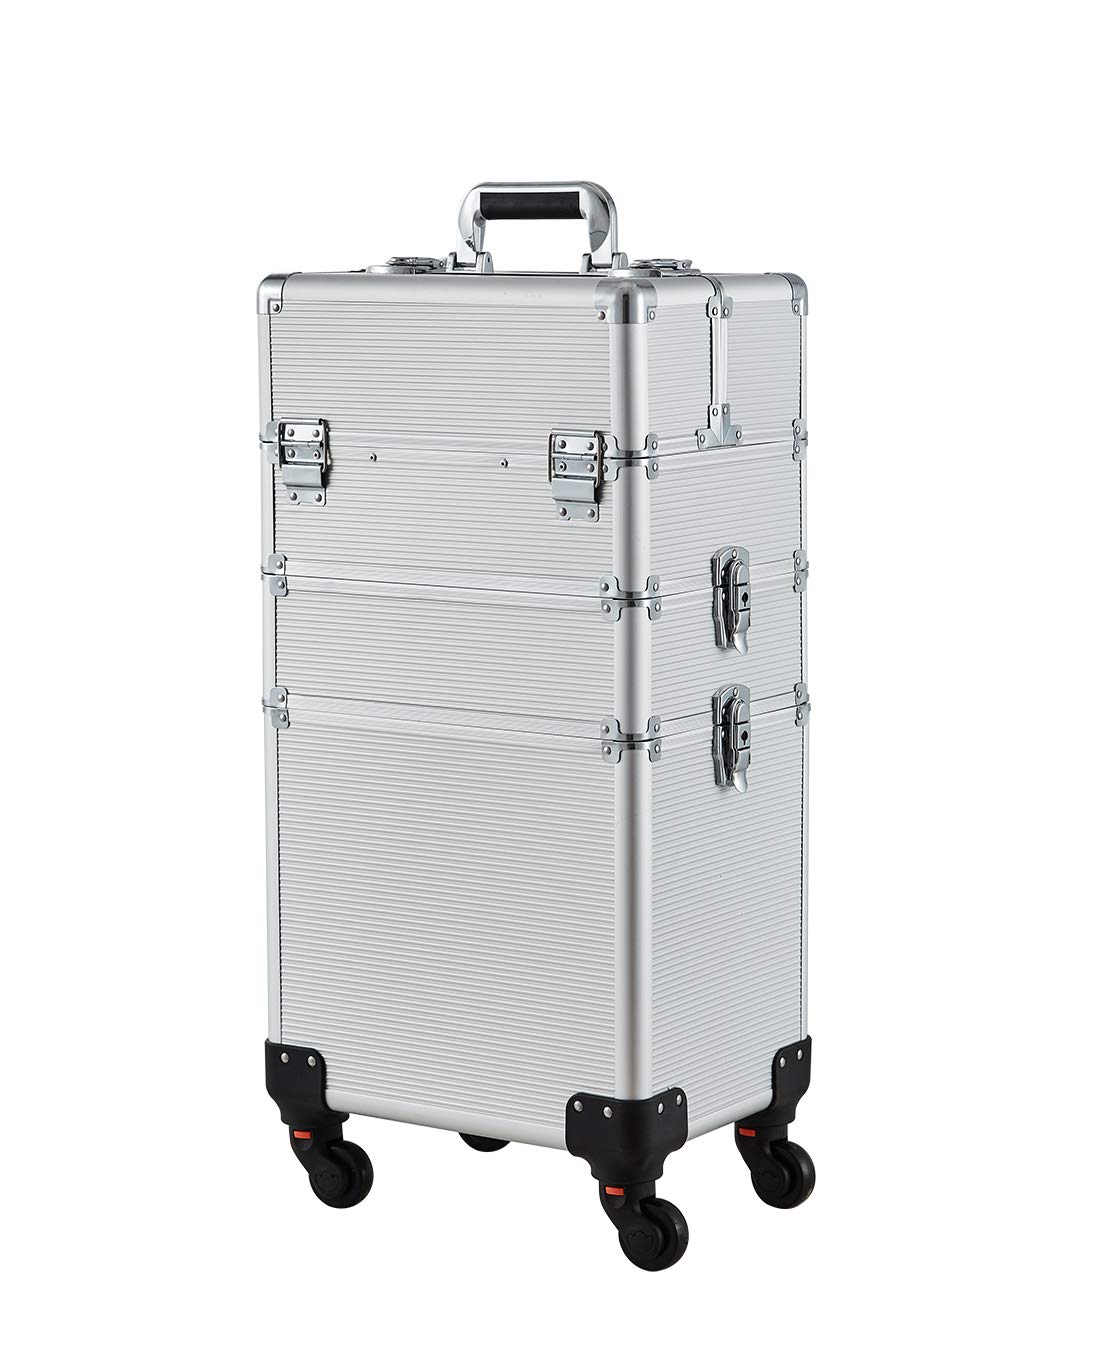 Makeup Case - 3 In 1 Aluminum Professional Rolling Cosmetic Beauty Storage With Folding Trays and Large Compartments Silver